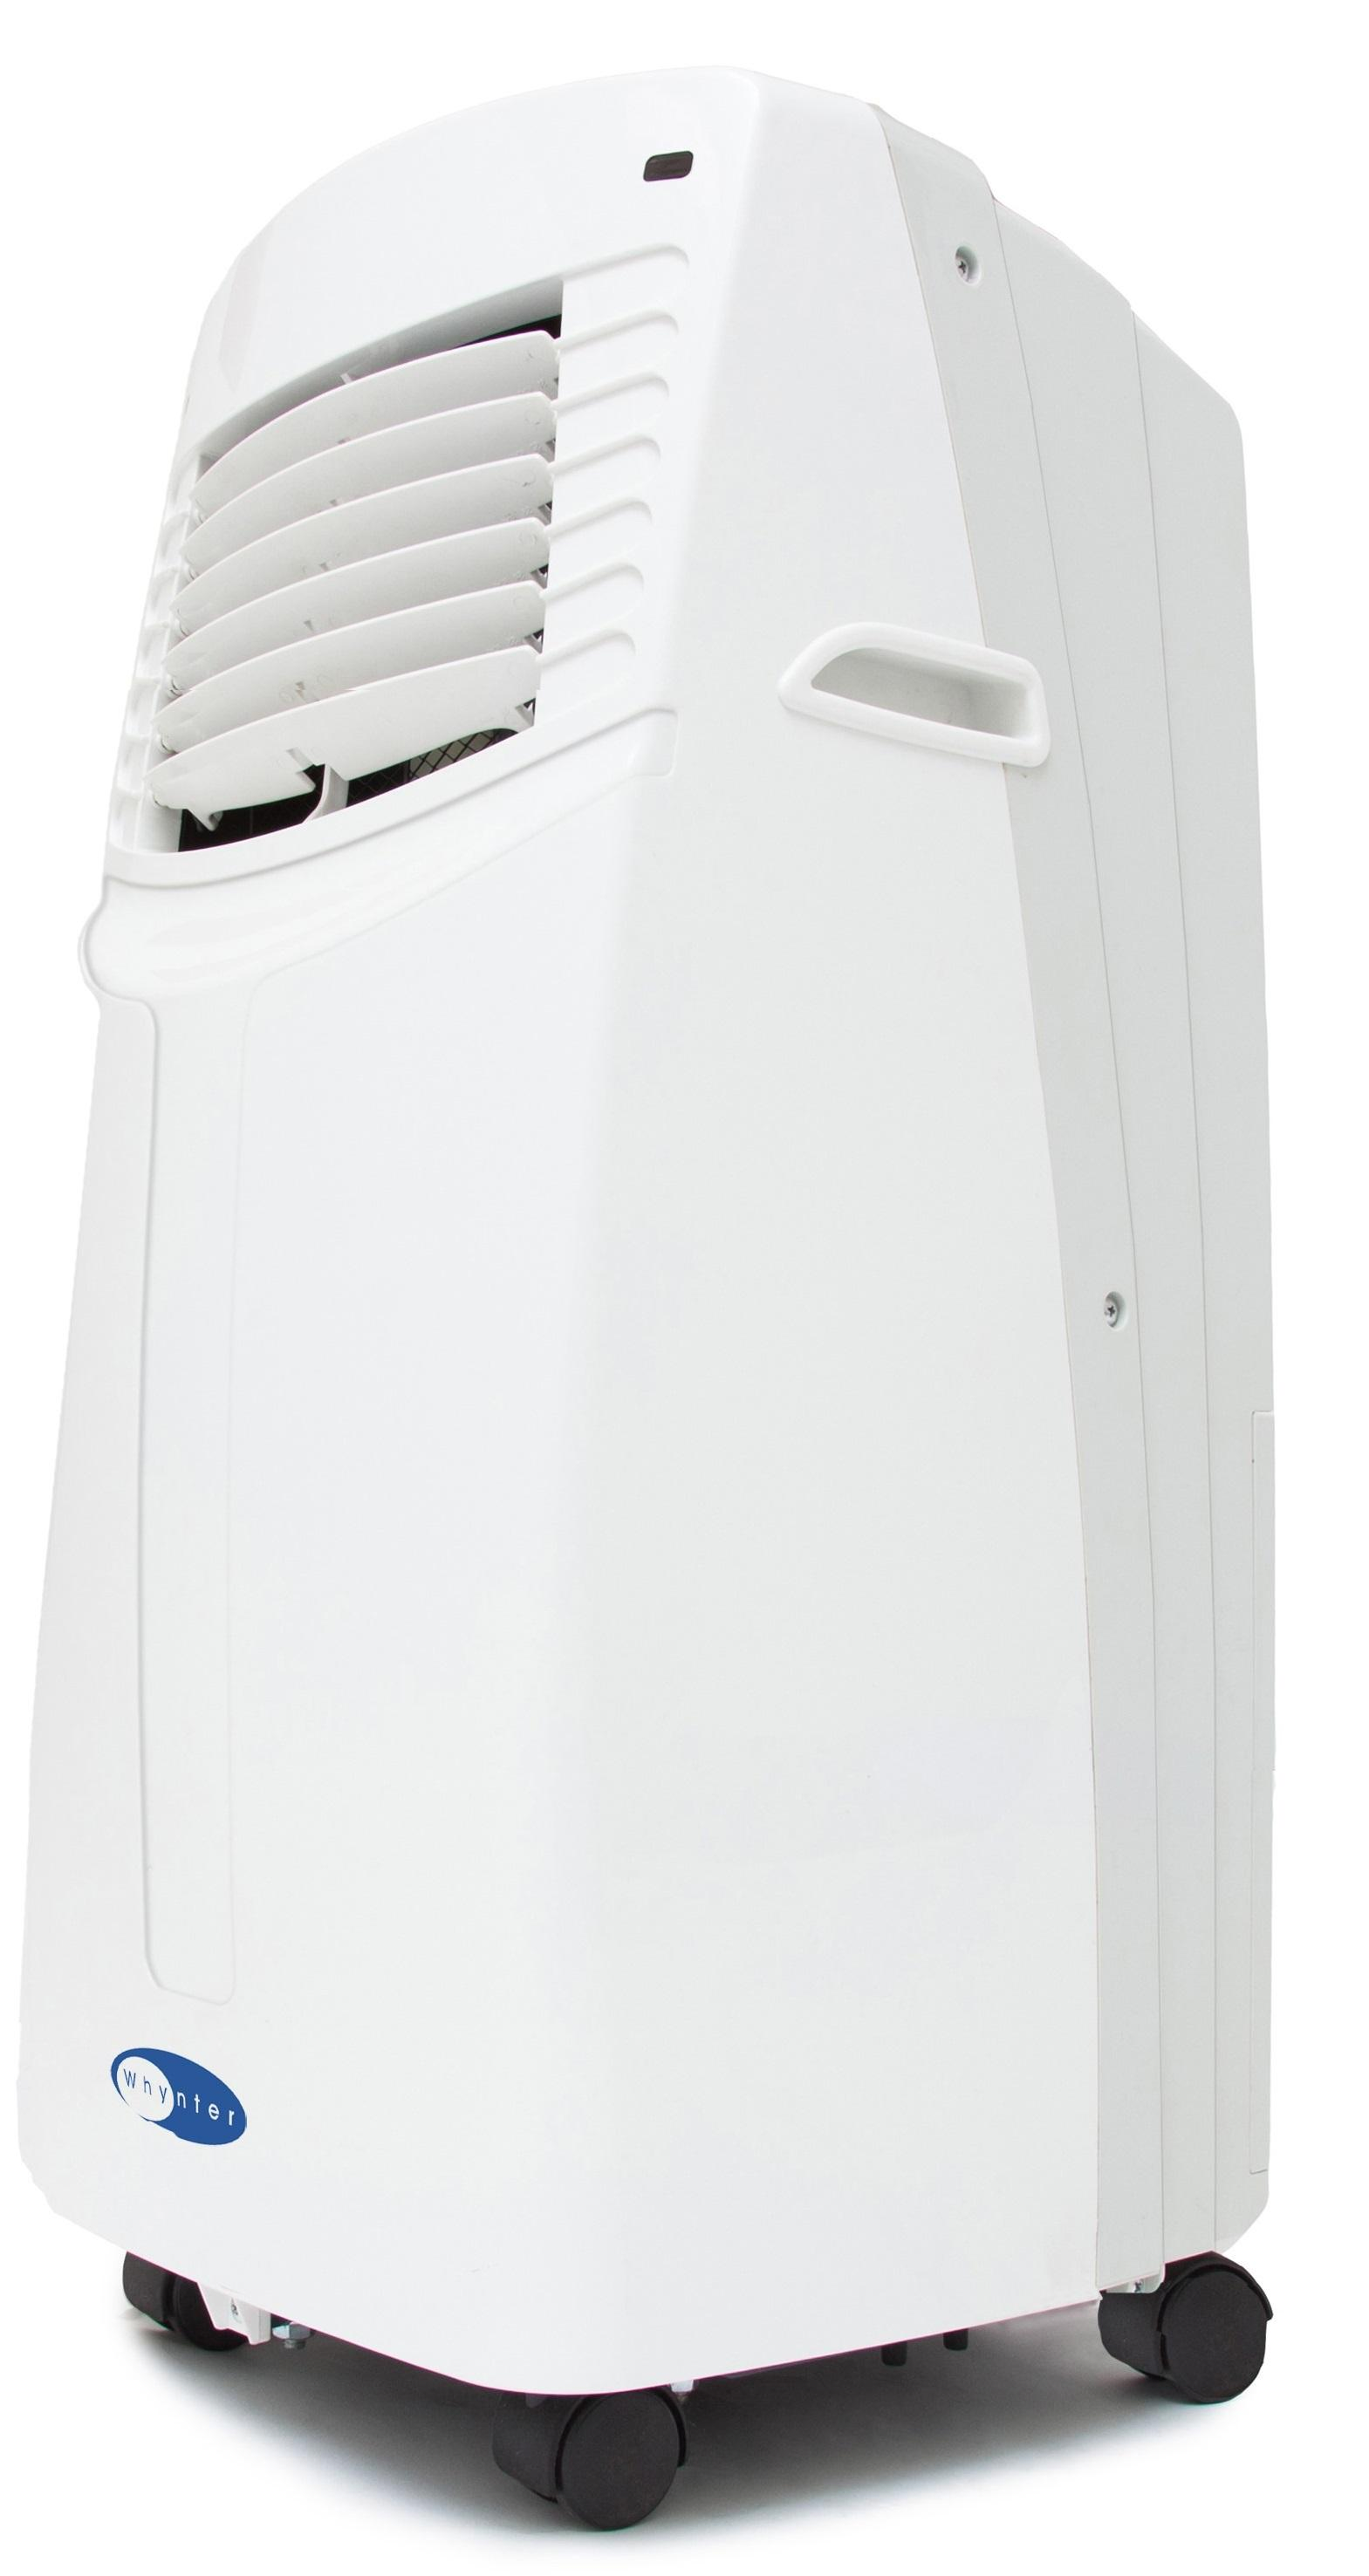 ARC 08WB Eco Friendly Portable Air Conditioner 8000 BTU White #1D4C93